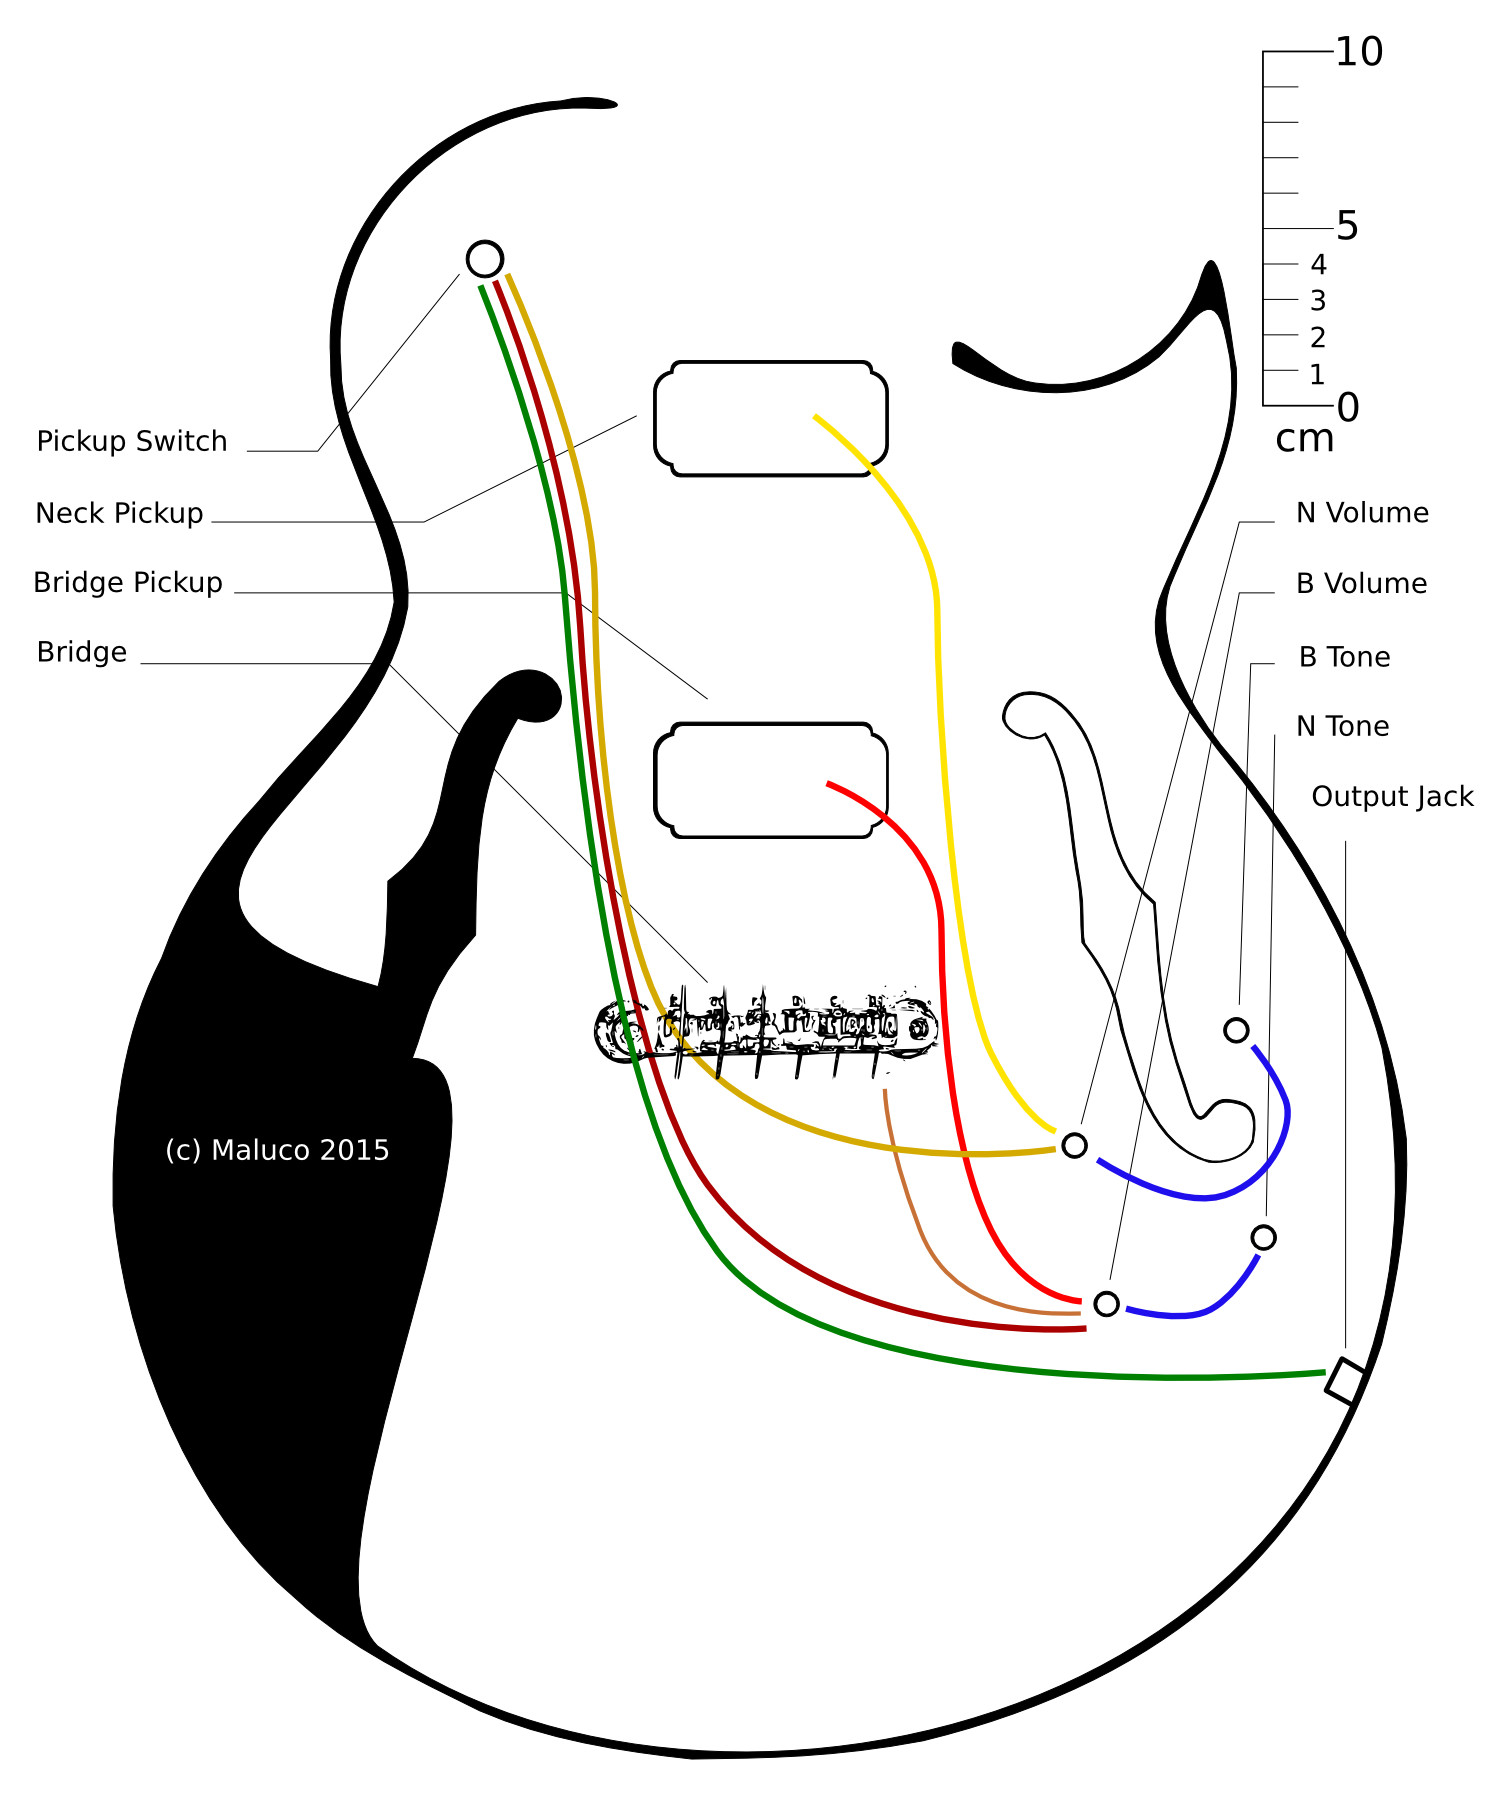 Olp Wiring Diagram Ibanez Gio Electric Guitar Wiring Diagram Wiring